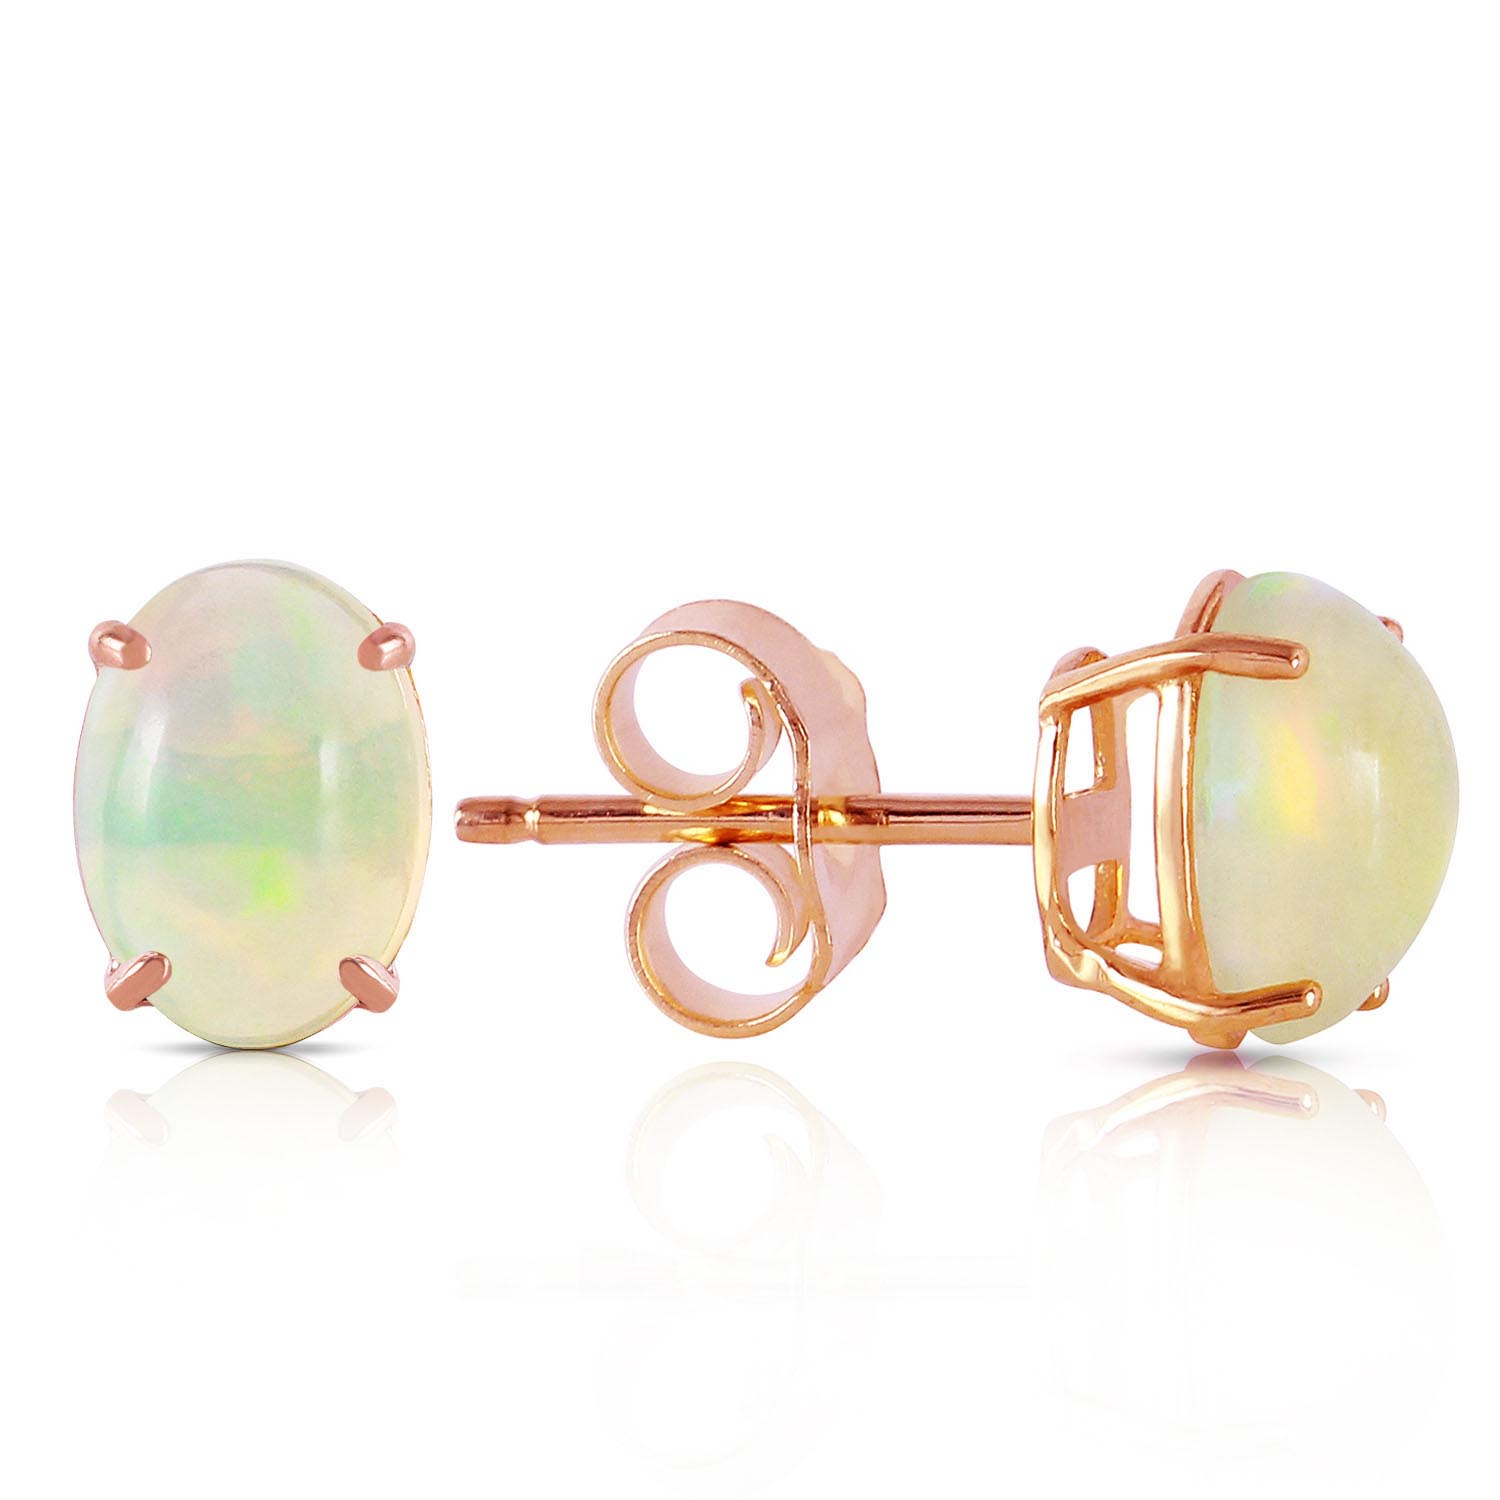 Opal Stud Earrings 0.9ctw in 9ct Rose Gold